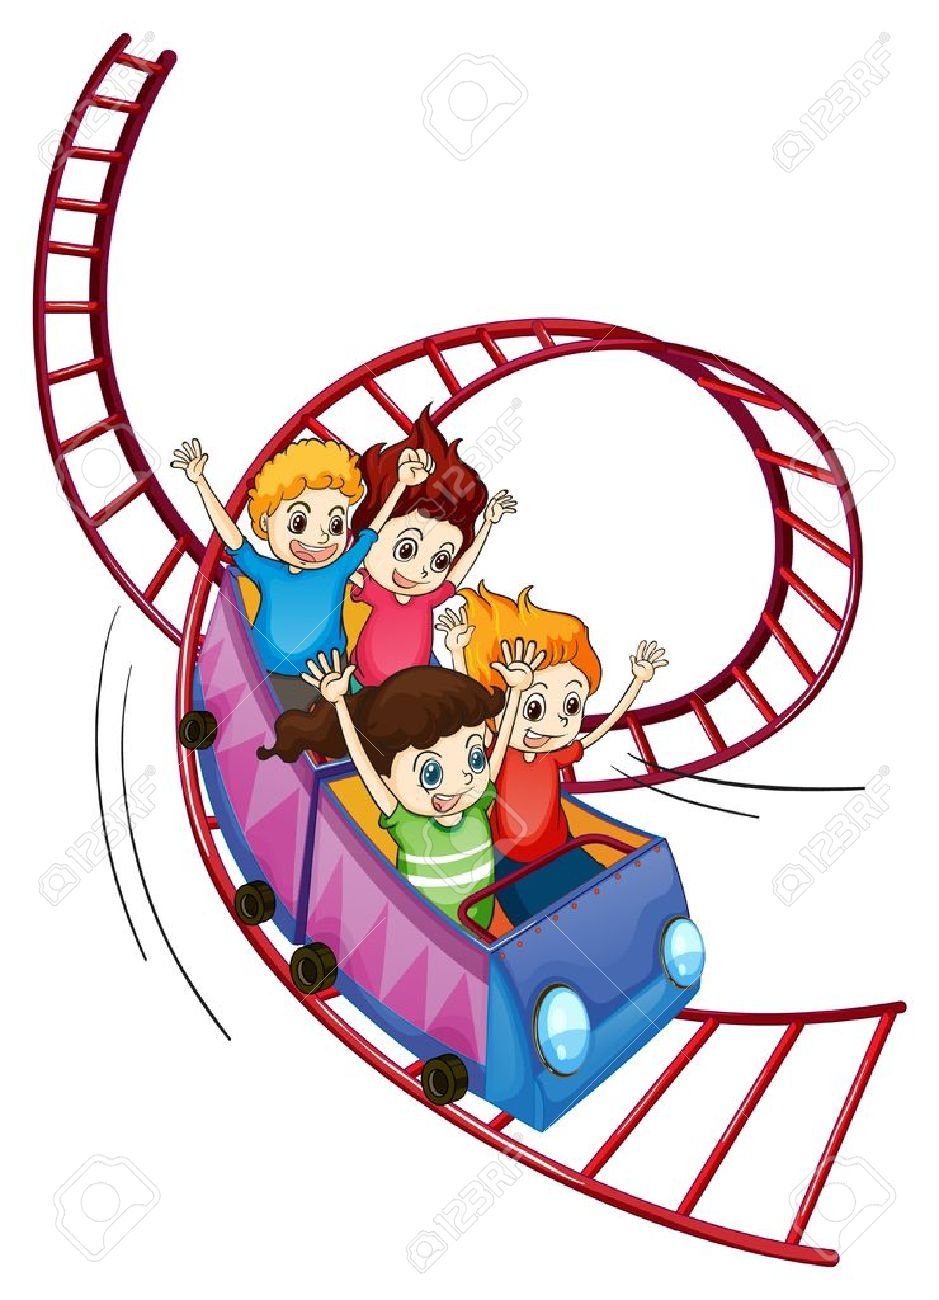 Illustration of brave kids riding in a roller coaster ride on a white background Stock Vector - 17895460